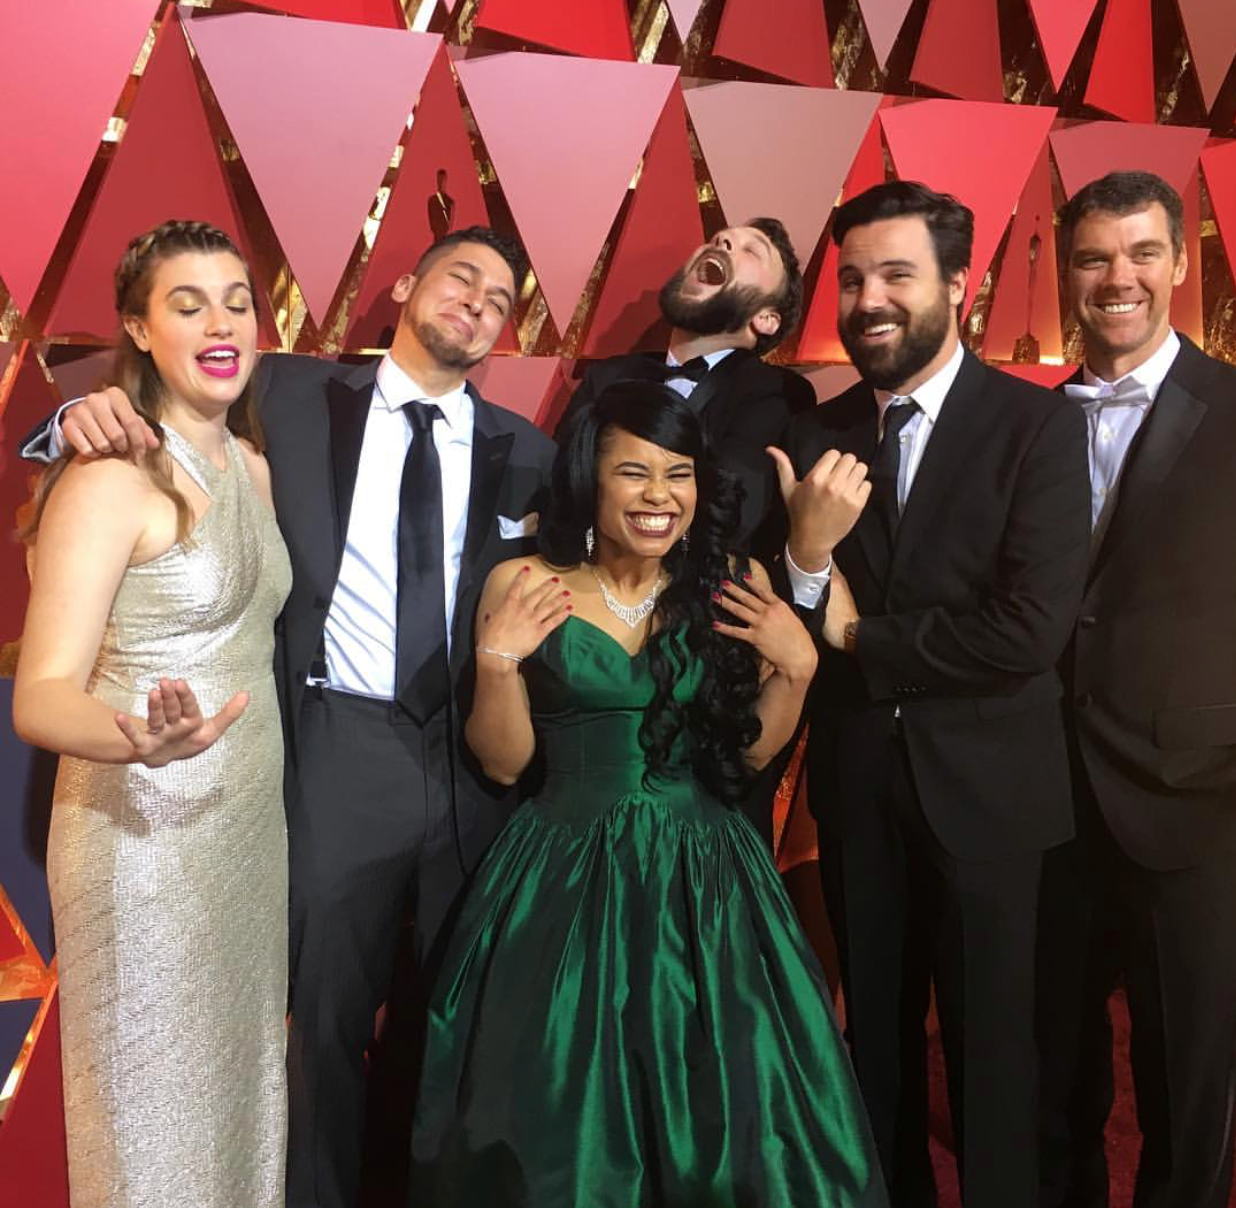 Shanae and other post-production crew members at the 2017 Oscars. Photo Credit: Shanae Cole via Instagram.